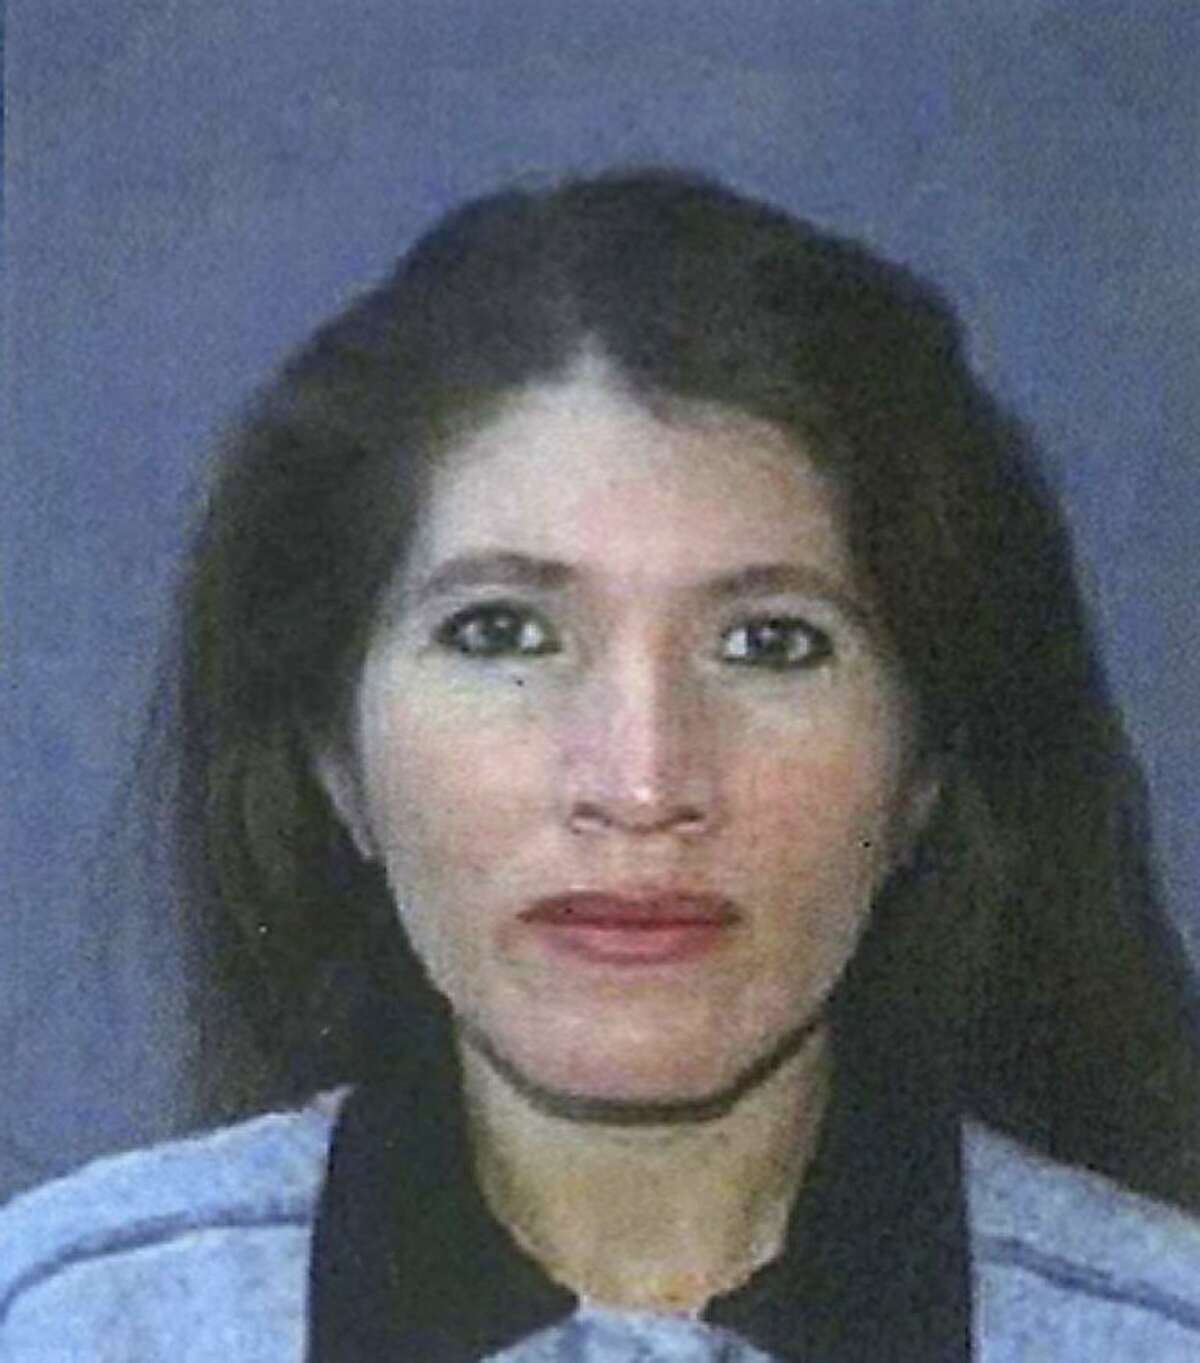 Martha Gutierrez of Gilroy, whose body was found near Hollister on March 22, 2012. Authorities believe she was killed by her son.